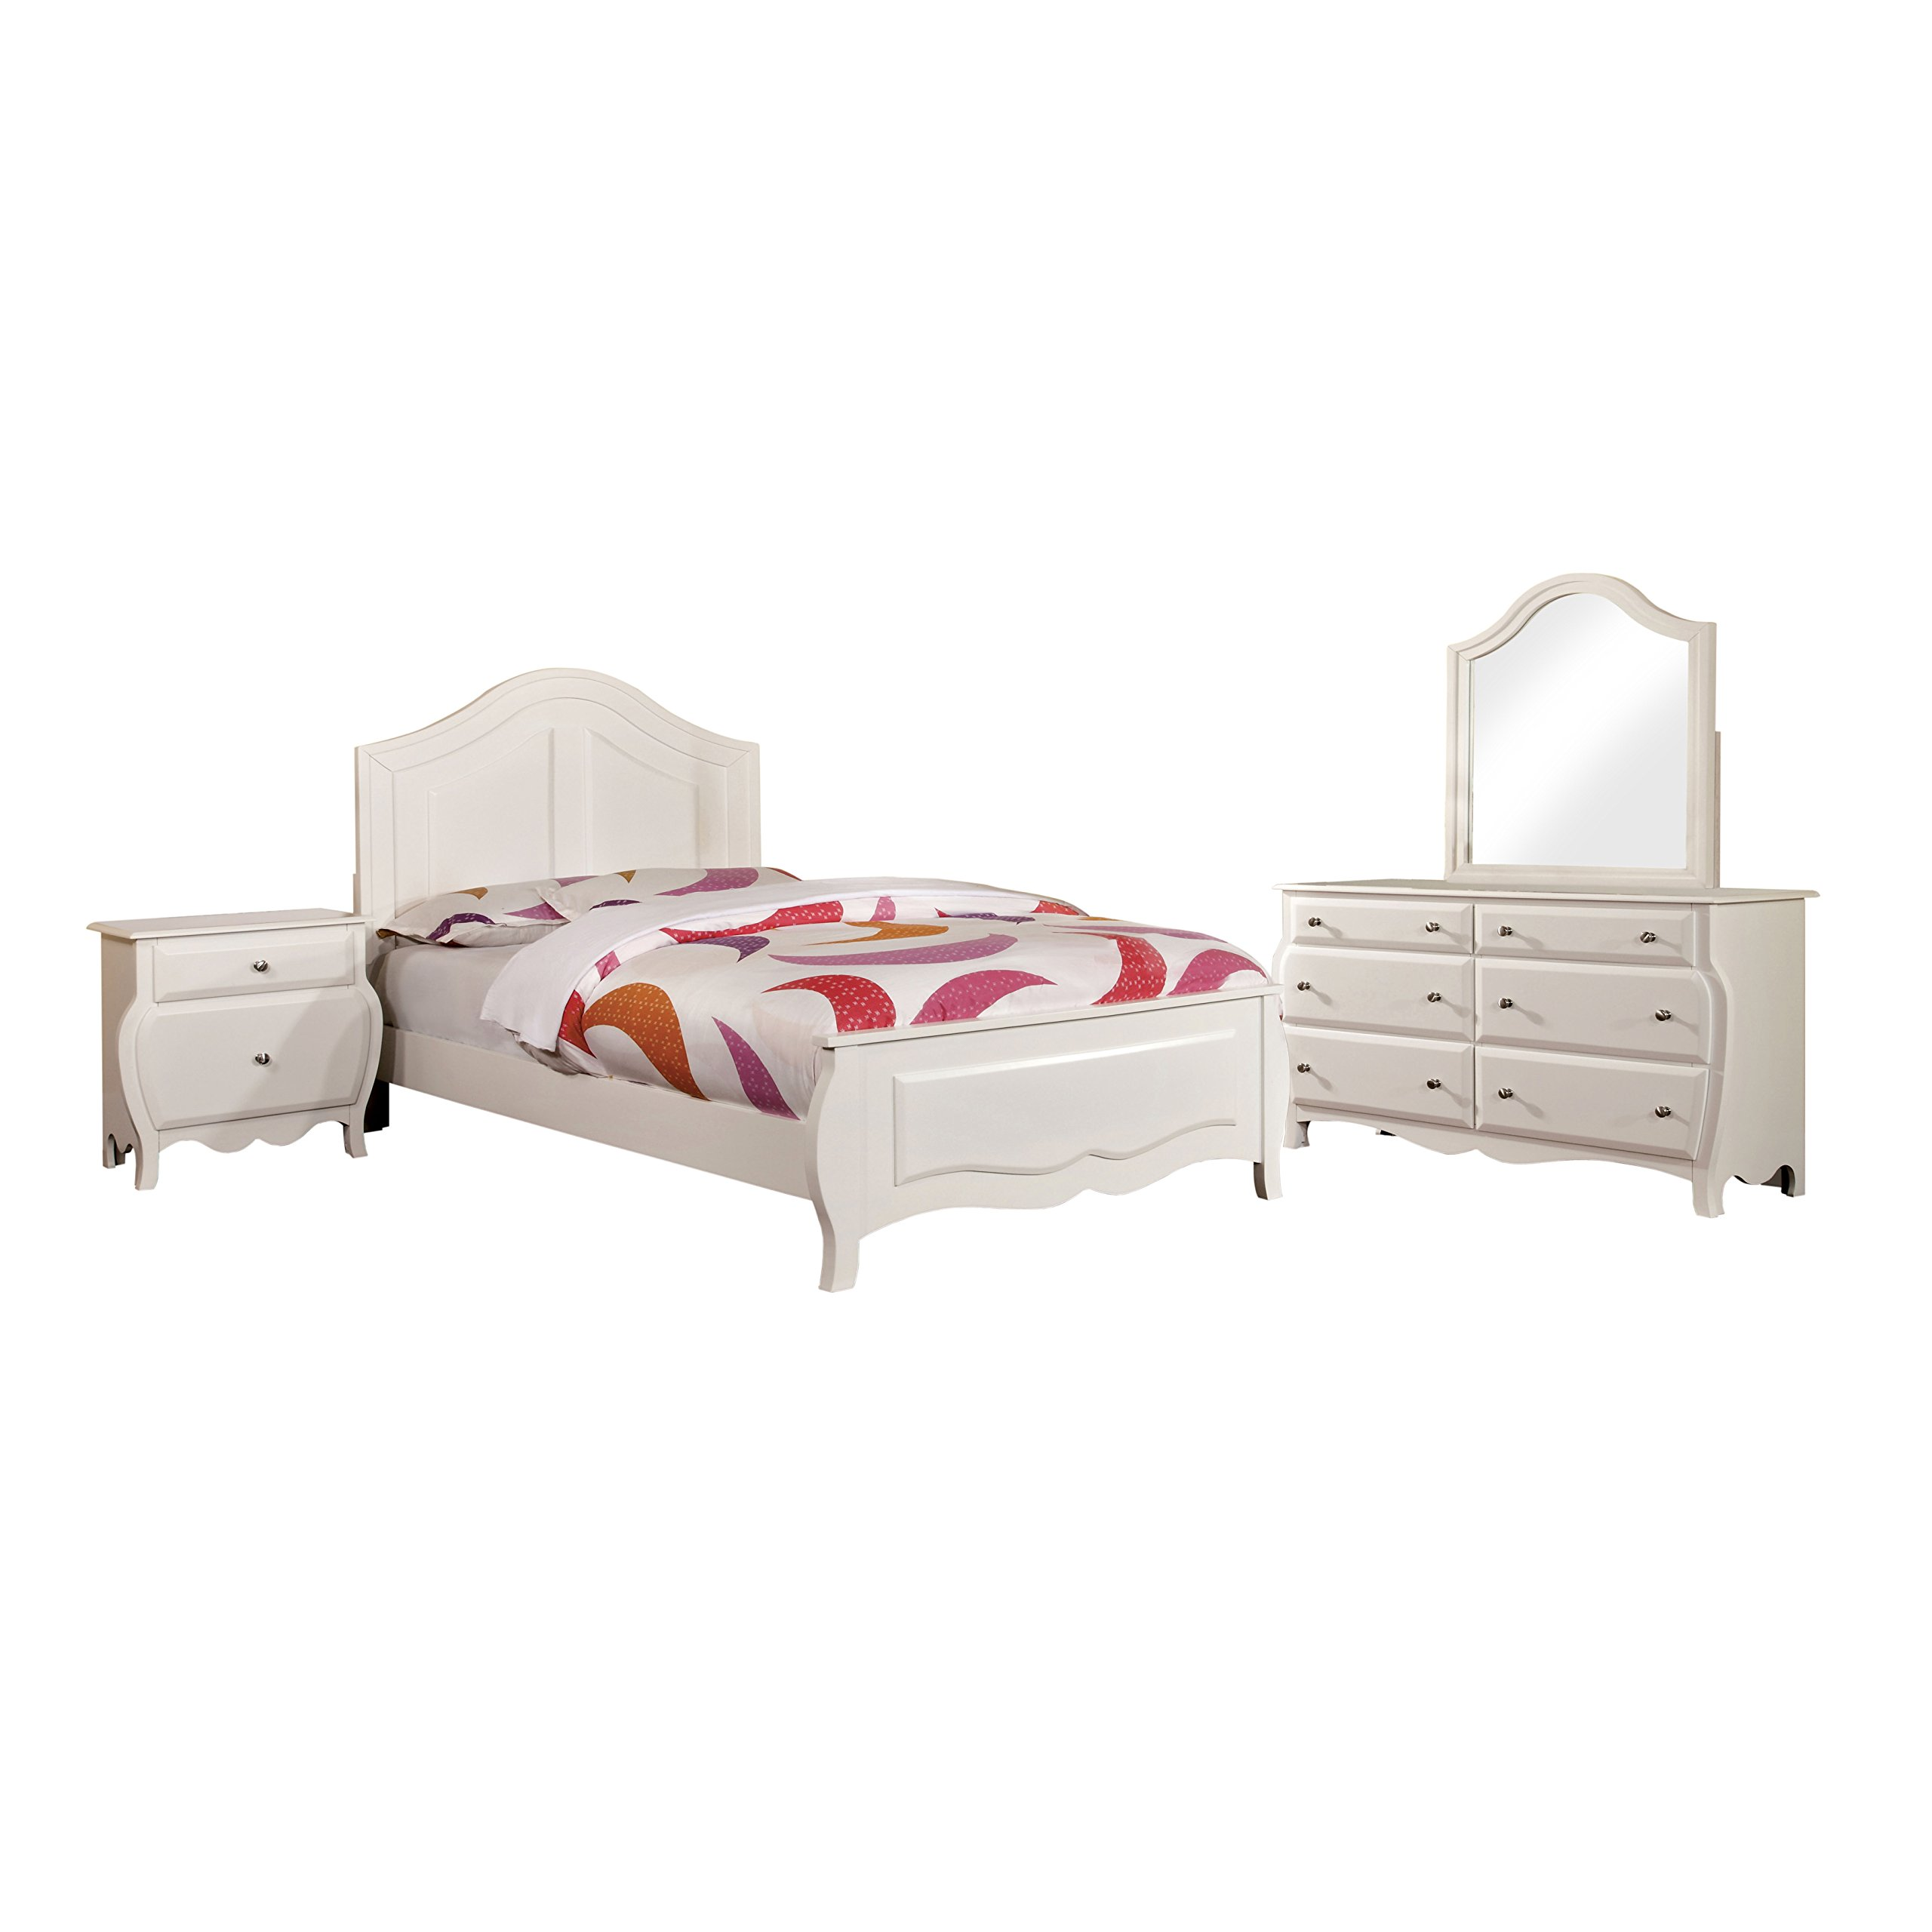 HOMES: Inside + Out 4 Piece ioHOMES Lionel Youth Bedroom Set, Twin, White